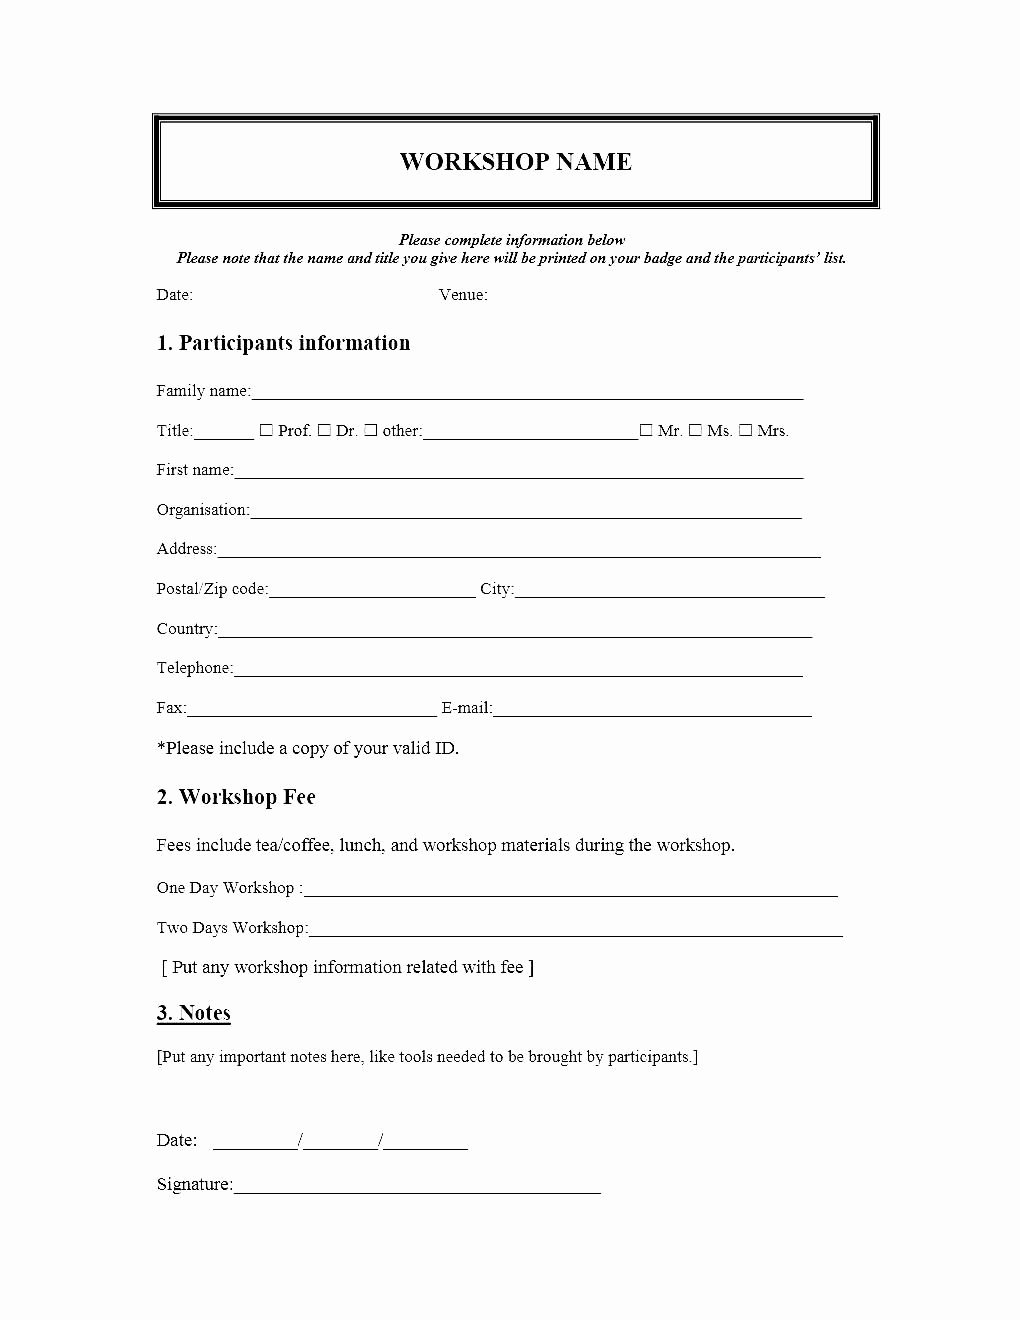 Free Registration form Template Luxury event Registration form Template Microsoft Word